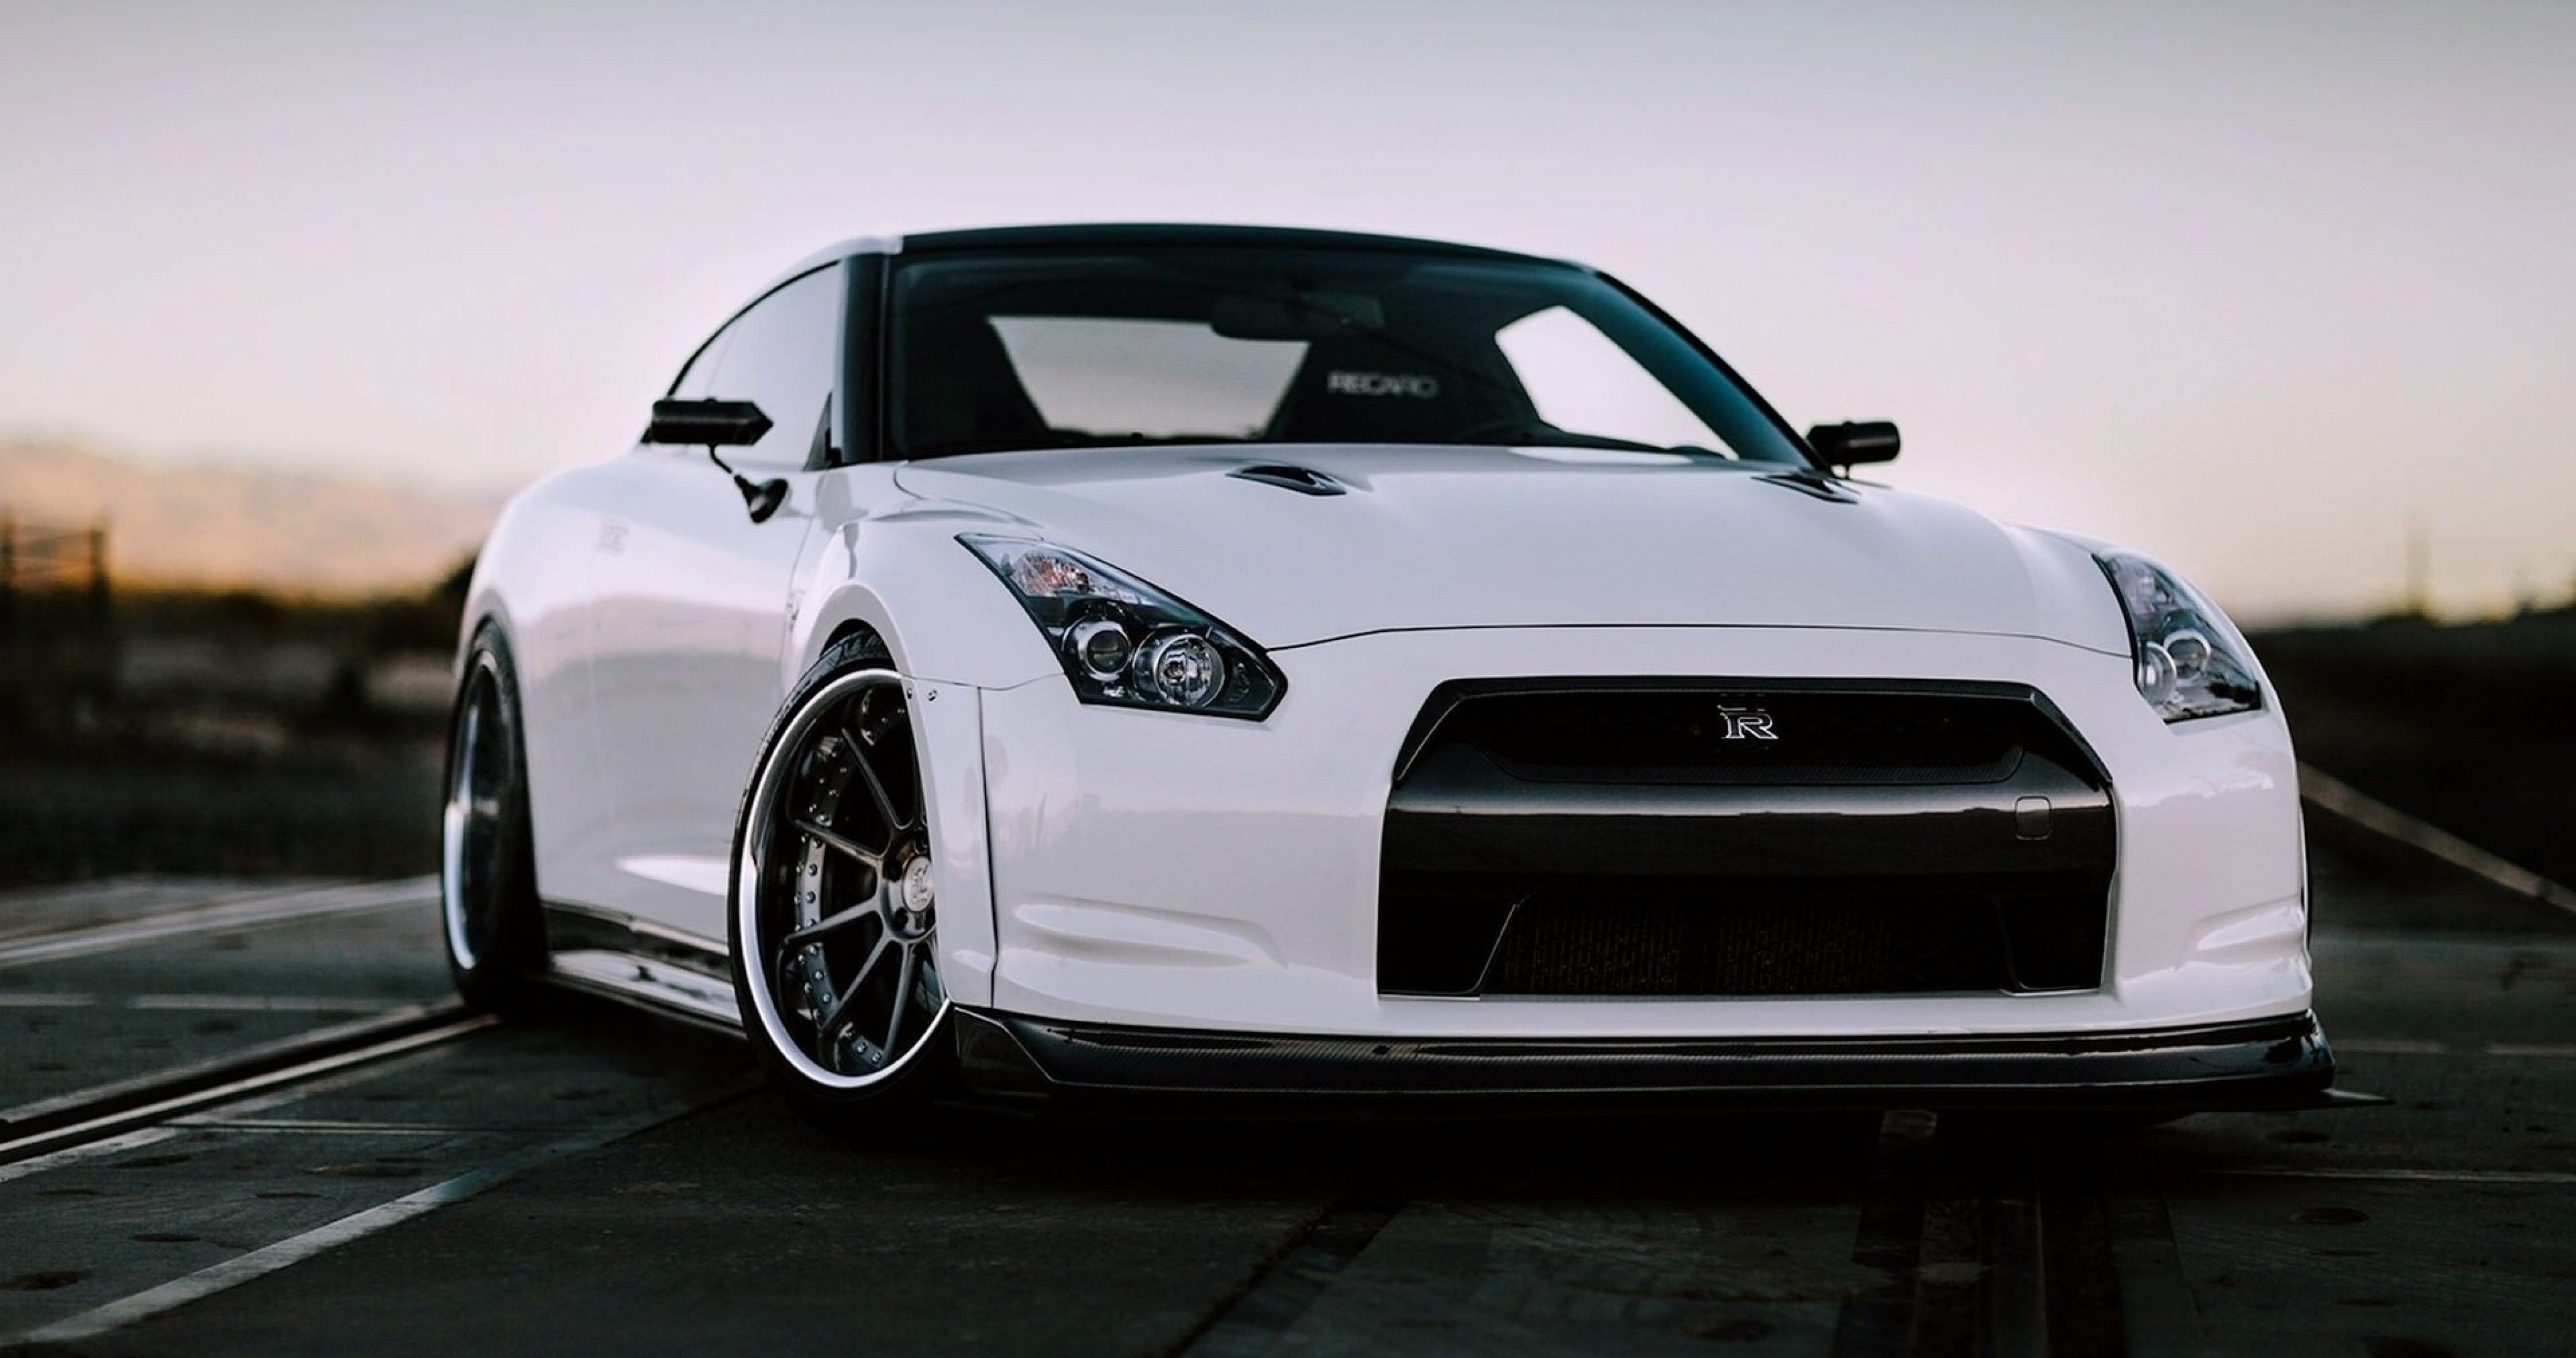 Until recently, buying an imported jdm car was a real hassle. 4k Jdm Wallpapers Top Free 4k Jdm Backgrounds Wallpaperaccess